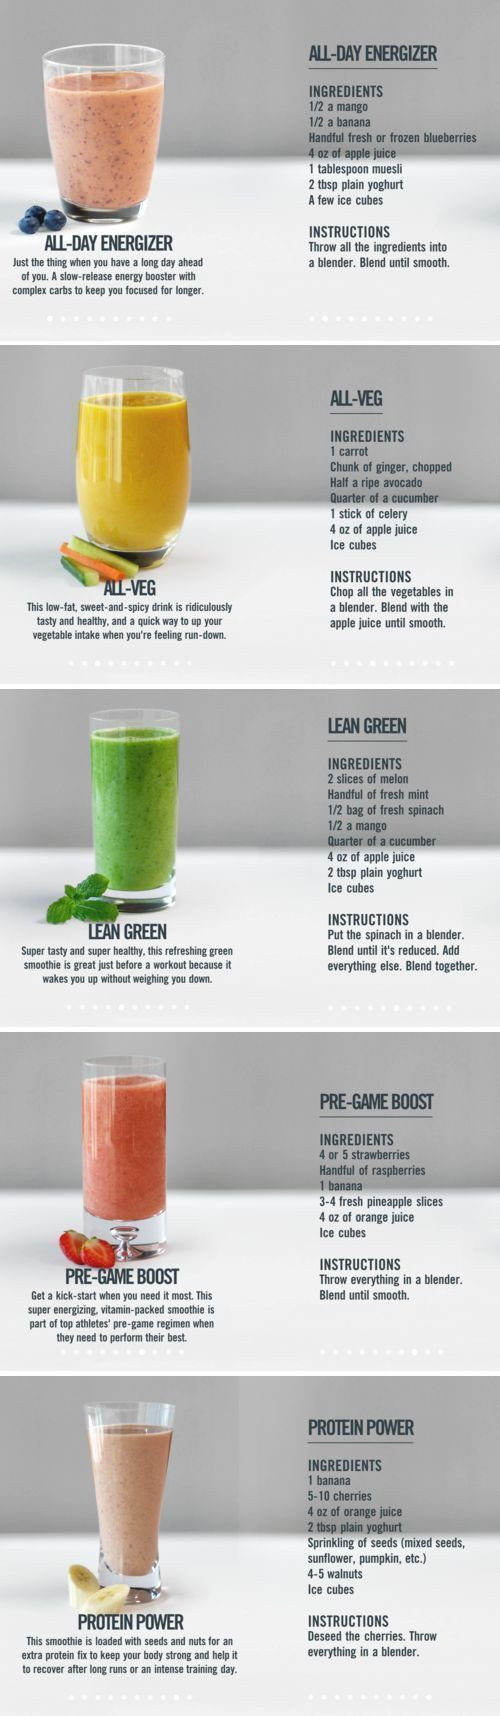 Smoothie Diet Recipes For Weight Loss Plan  Find The Best Diet Plan For Your Wedding